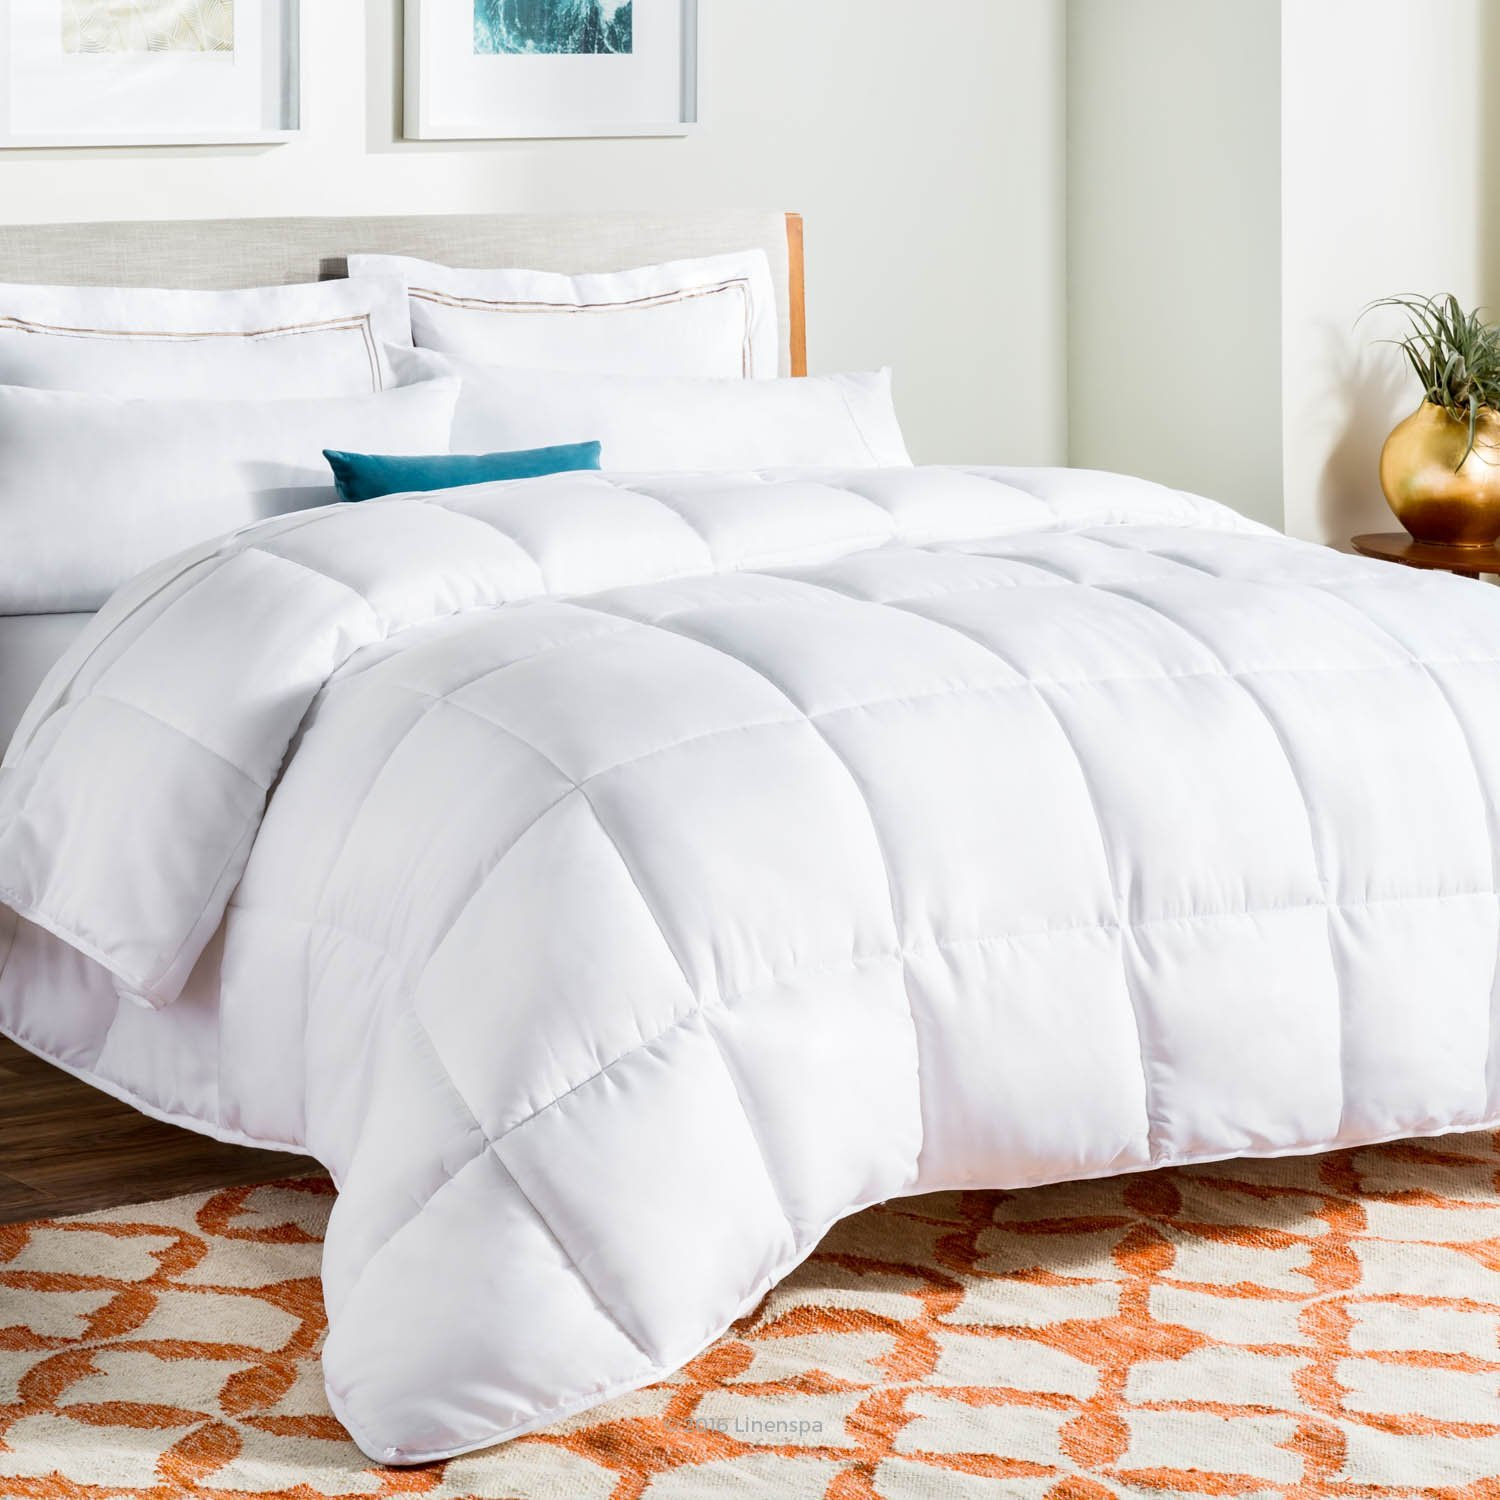 Linenspa White Goose Down Alternative Queen Comforter with Duvet Tabs